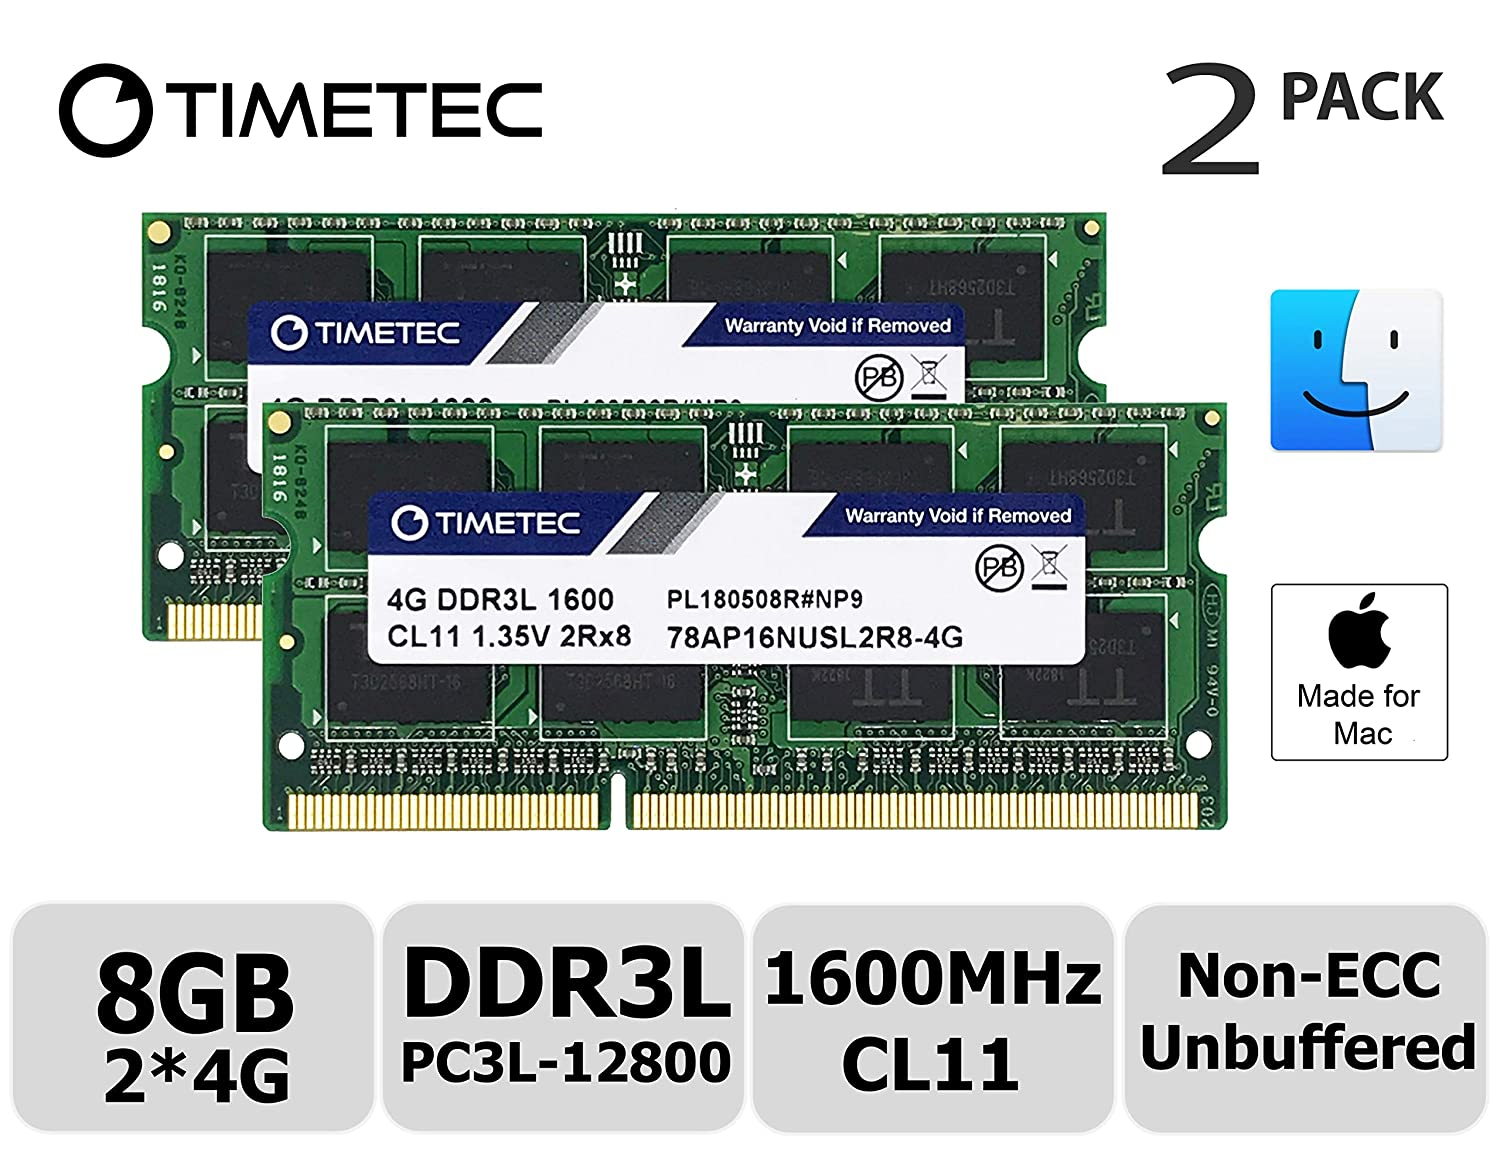 Low Density 8GB Kit 2x4GB 2x4GB DDR3L 1600MHz PC3L-12800 SODIMM Memory Upgrade For MacBook Pro 13-inch//15-inch Mid 2012 Timetec Hynix IC Apple 8GB Kit iMac 21.5-inch Late 2012//Early 2013